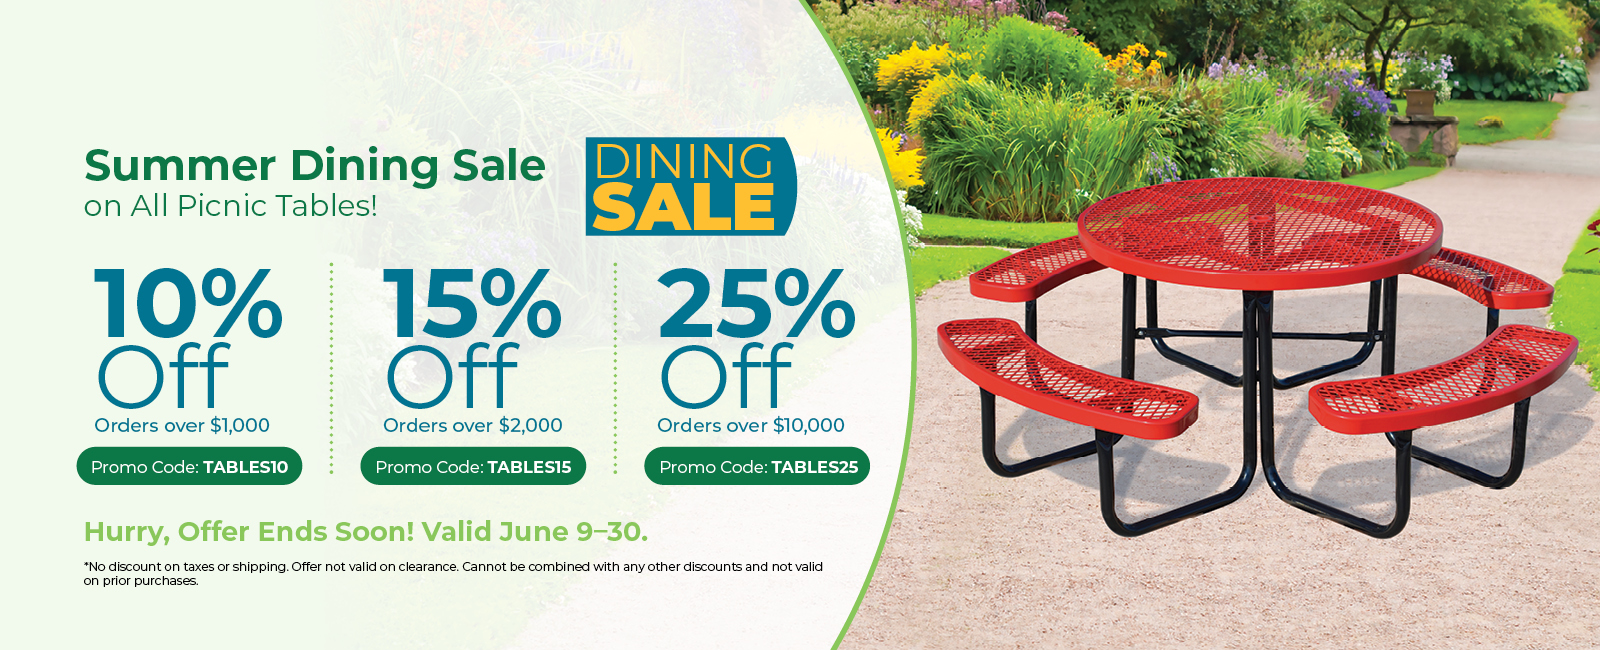 Picnic Tables Promotion